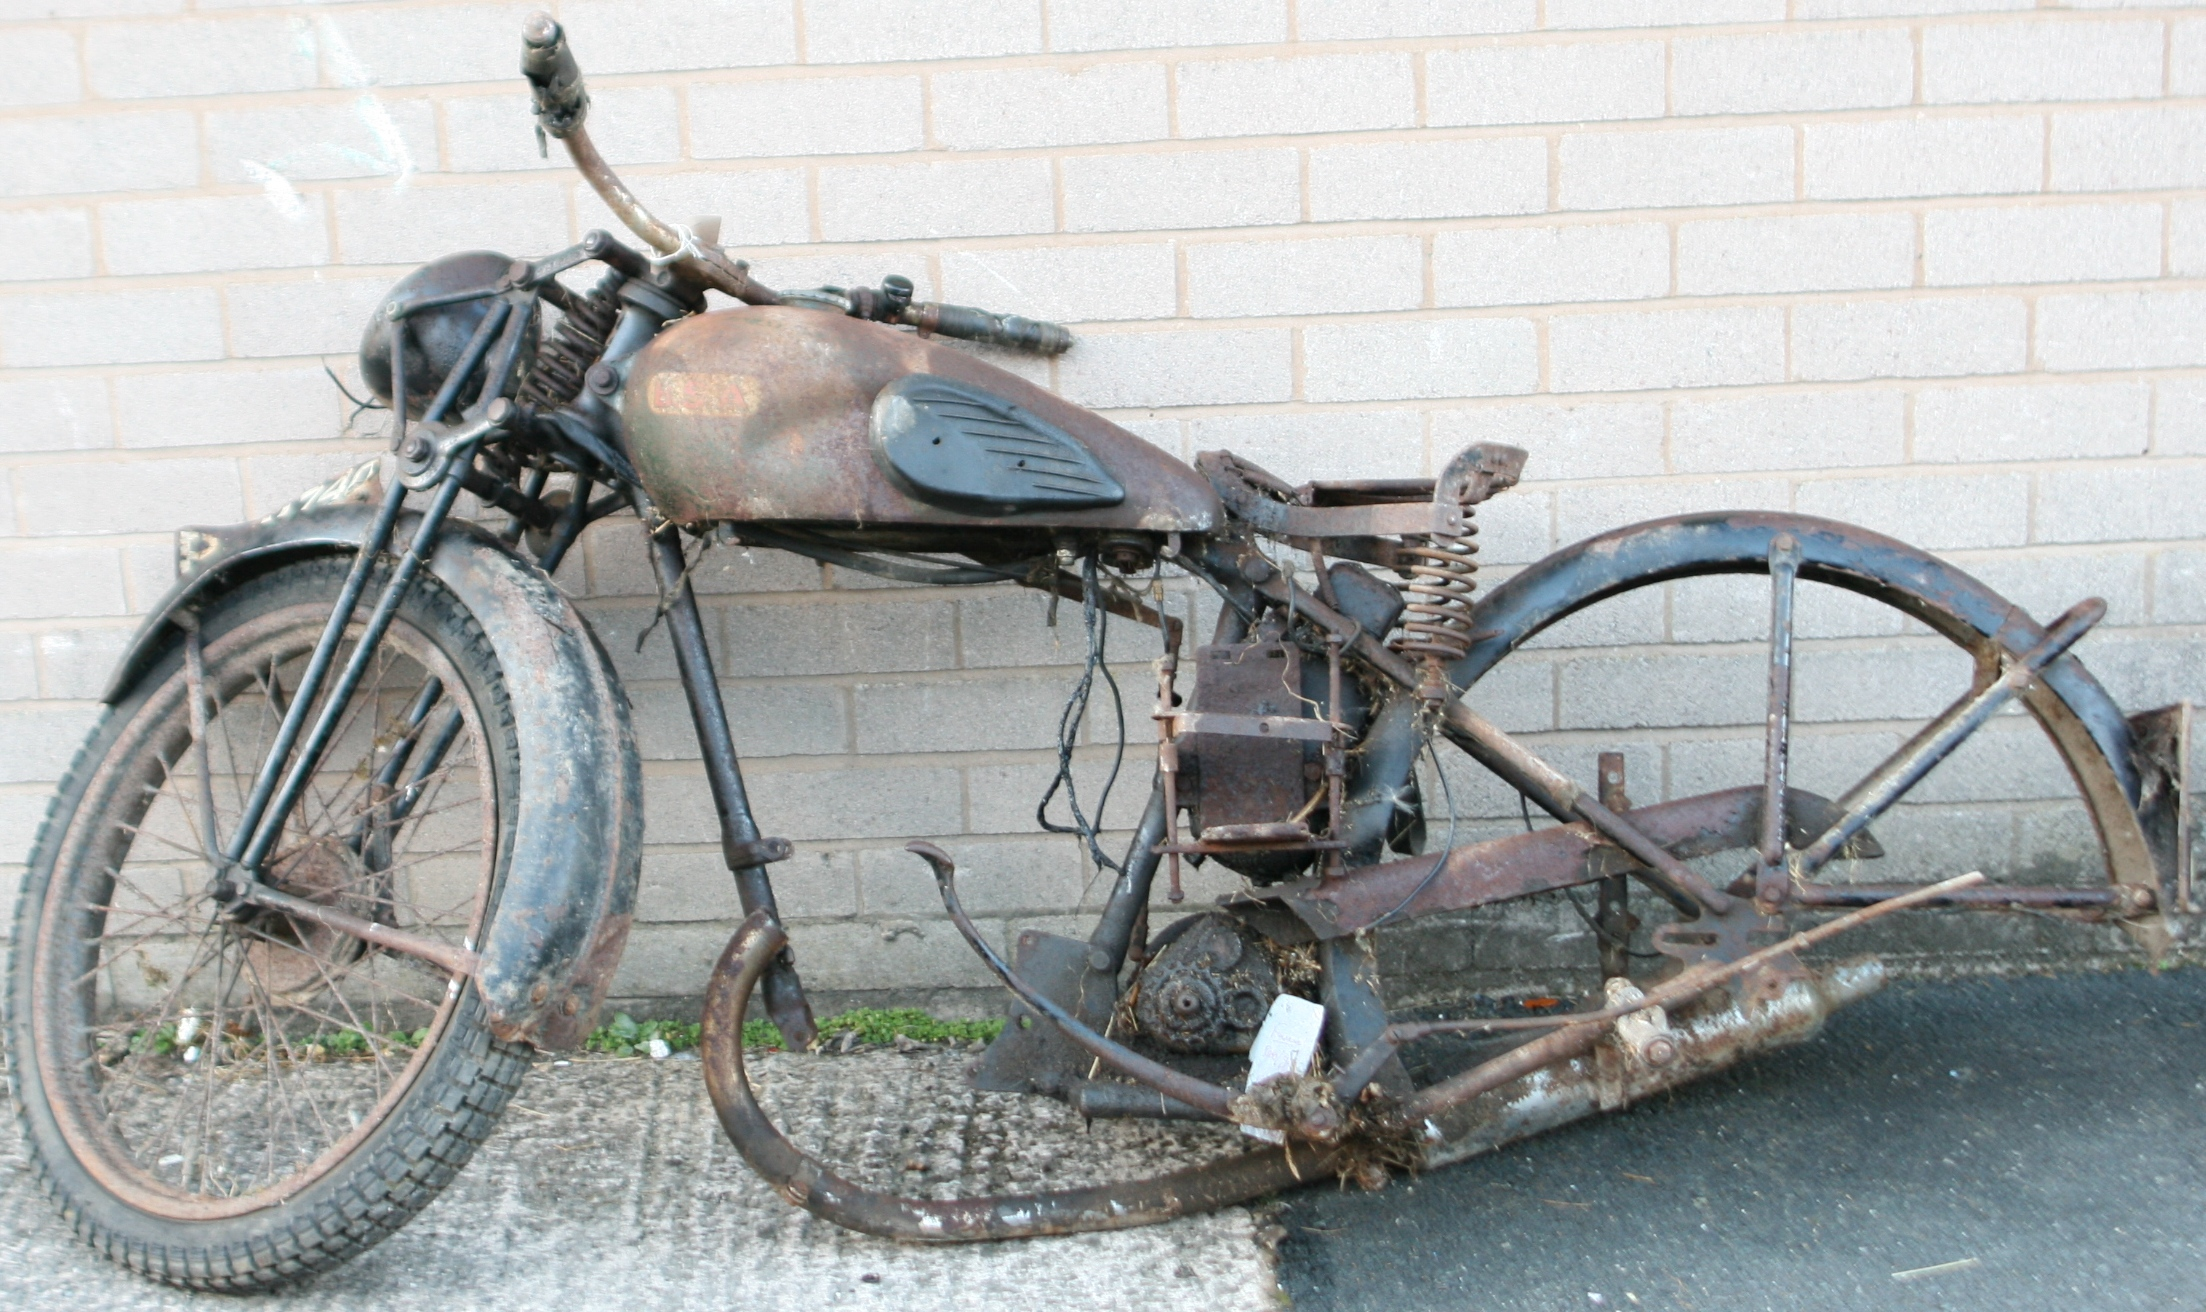 lot 94a a 1930s bsa motorcycle frame frame number 5 4099 reg brm740 - Motorcycle Picture Frame